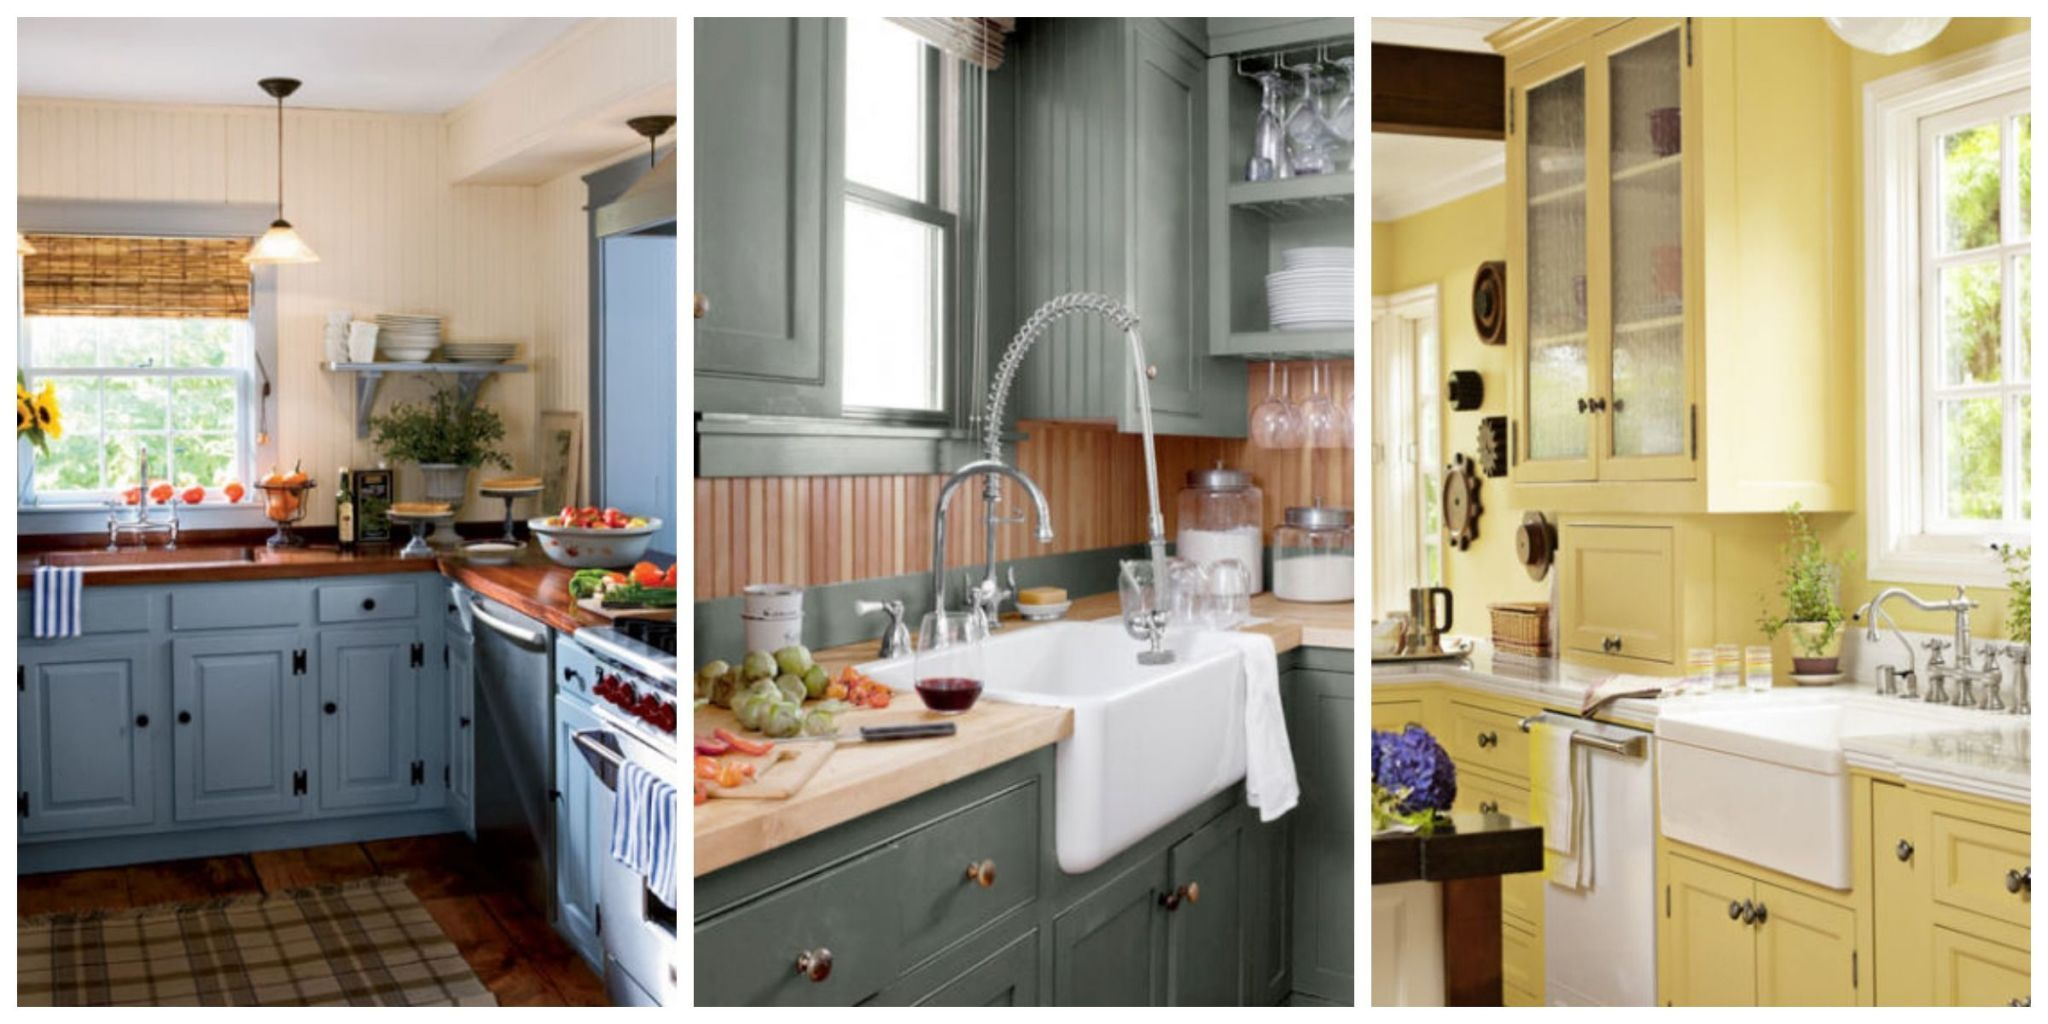 Create A Beautiful And Colorful Kitchen With These Paint And Decorating  Ideas.